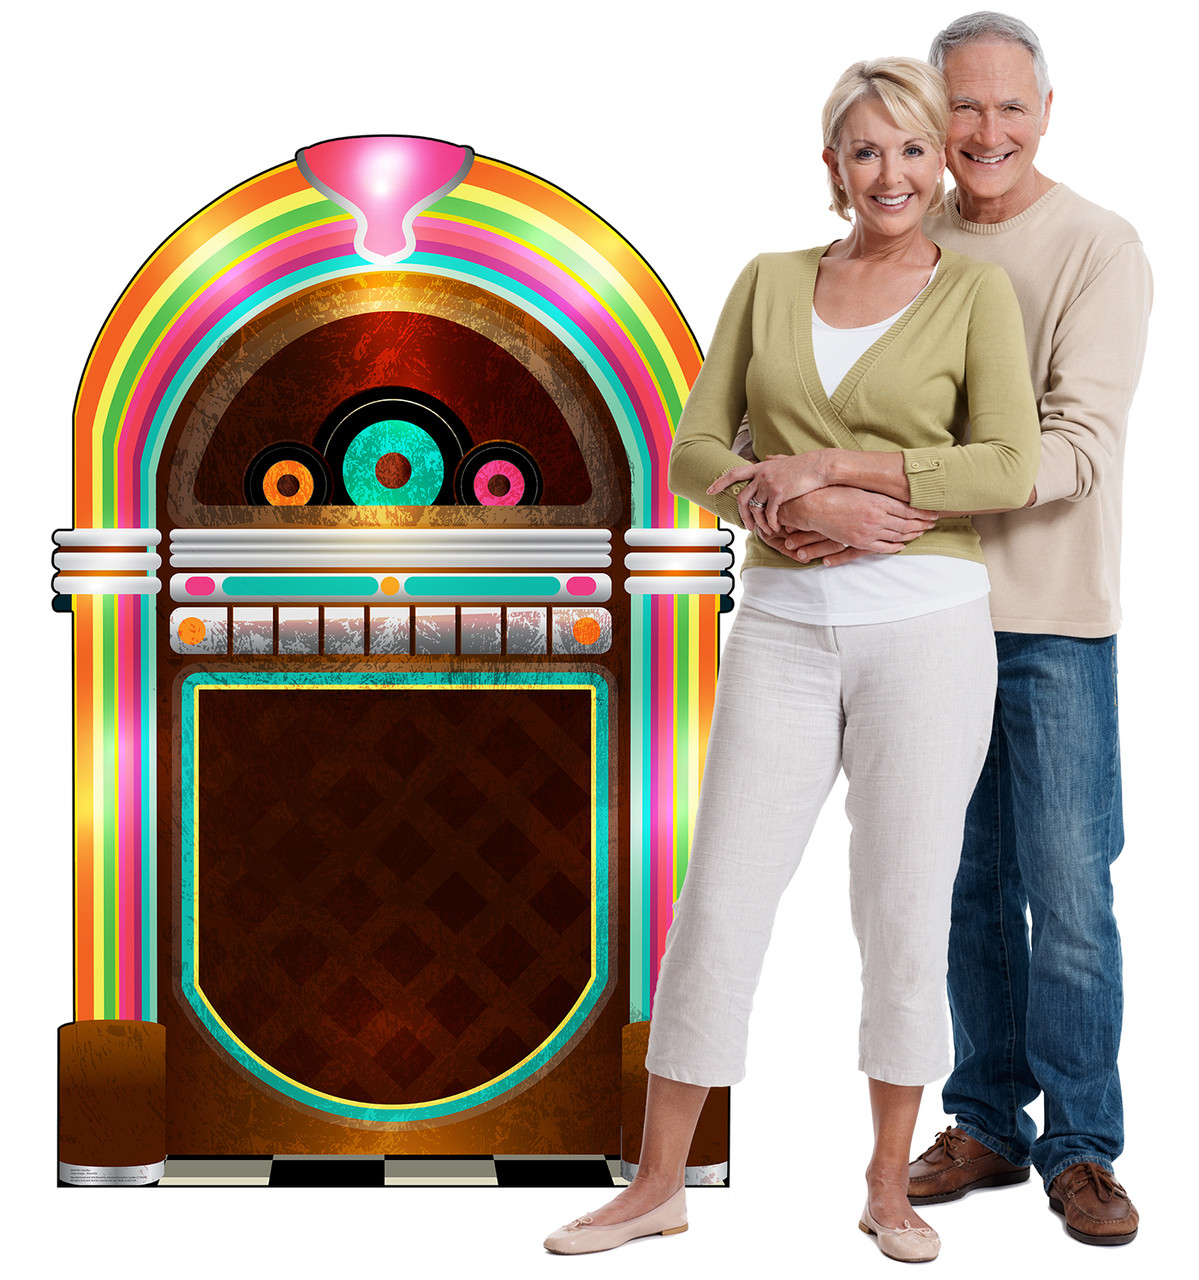 Life-size cardboard standee of 50's Juke Box with models.